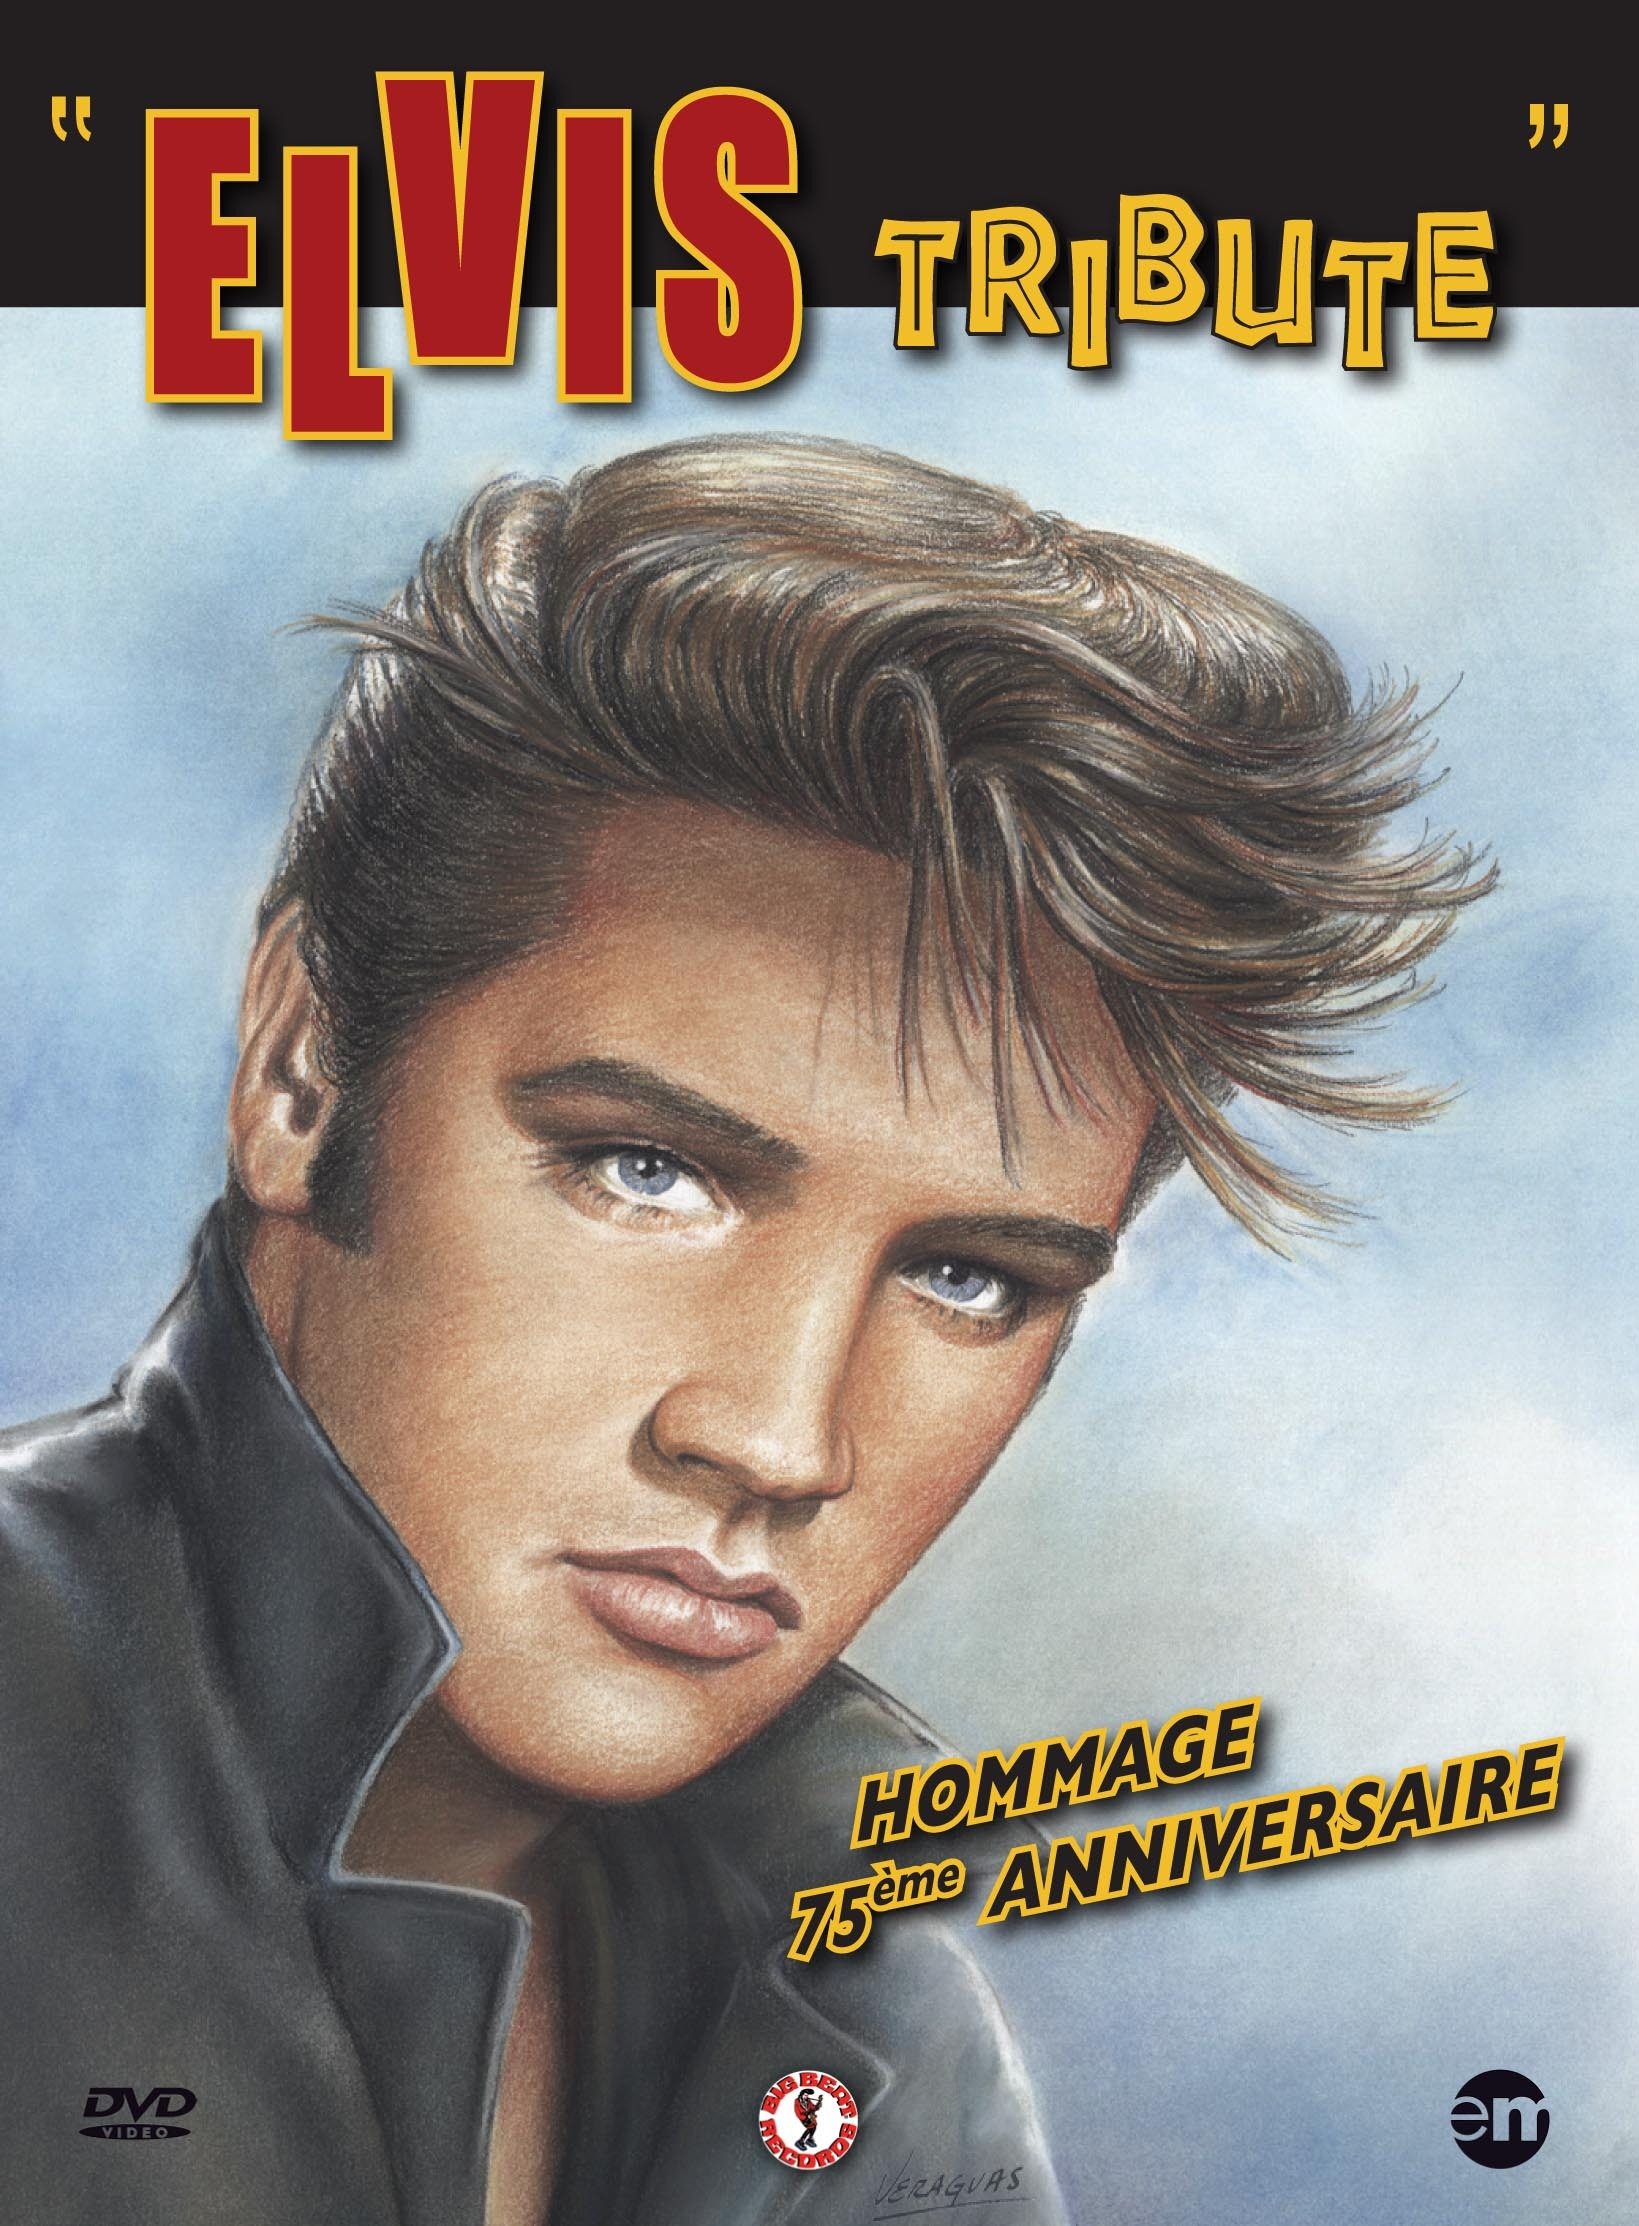 ELVIS TRIBUTE - DVD